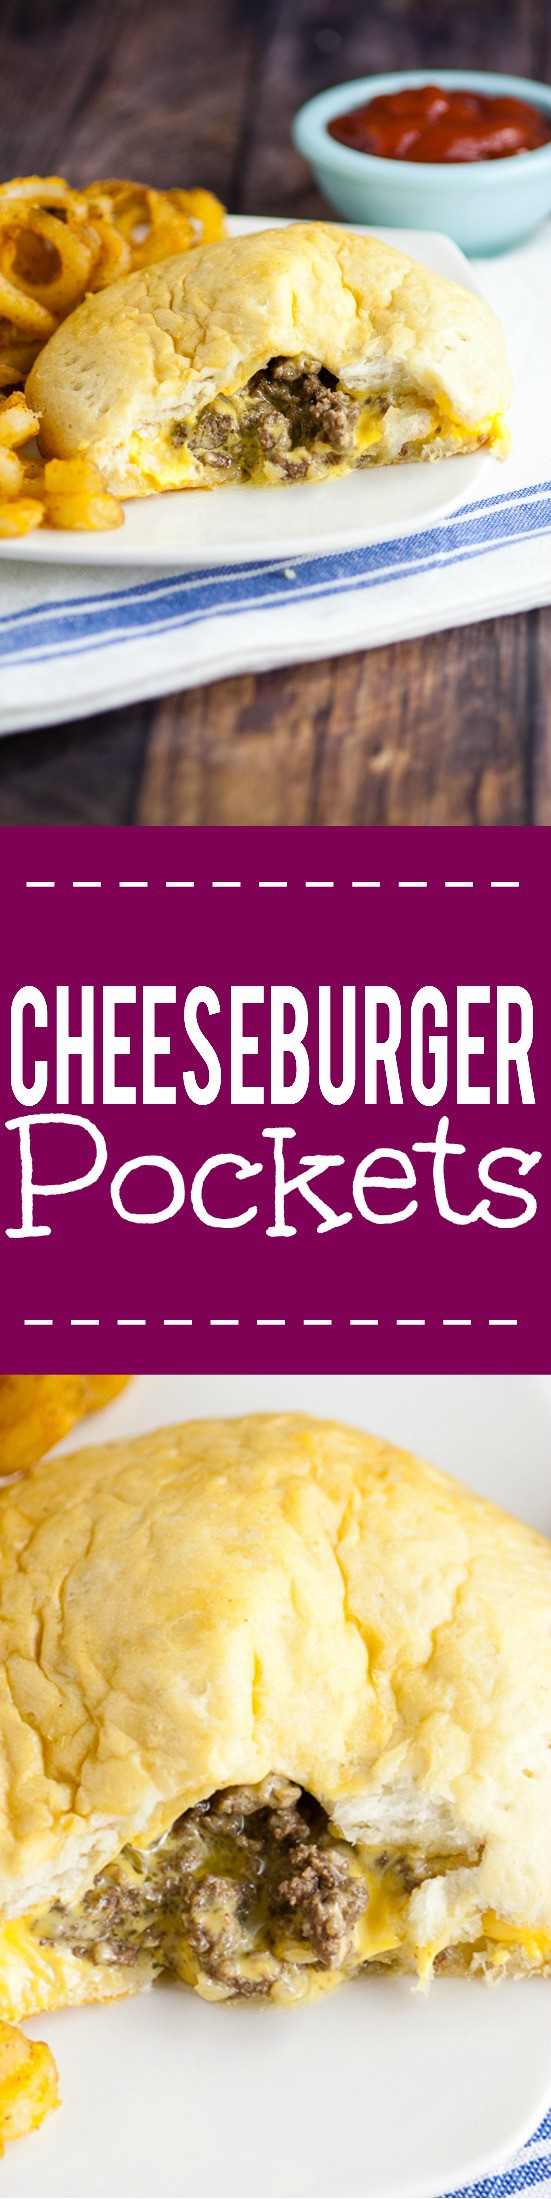 Cheesburger Pockets Recipe - Made in just 30 minutes with 5 ingredients, this cheesy Cheeseburger Pockets recipe is the ultimate yummy, quick and easy family dinner recipe. It's even great for on-the-go! Love this! Kind of like a homemade hot pocket